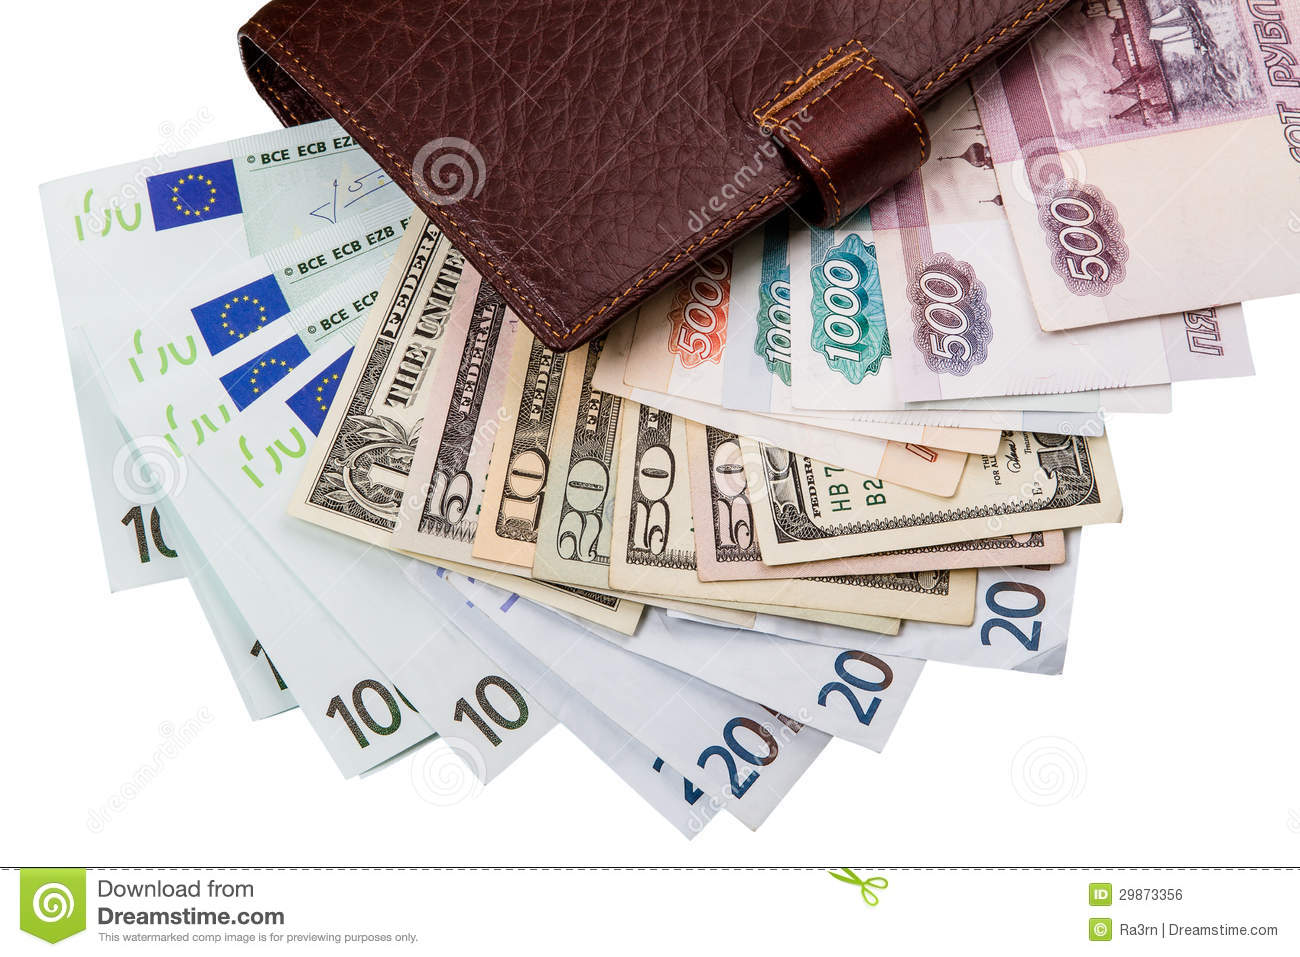 Dollars, euros, russian Robles in the wallet